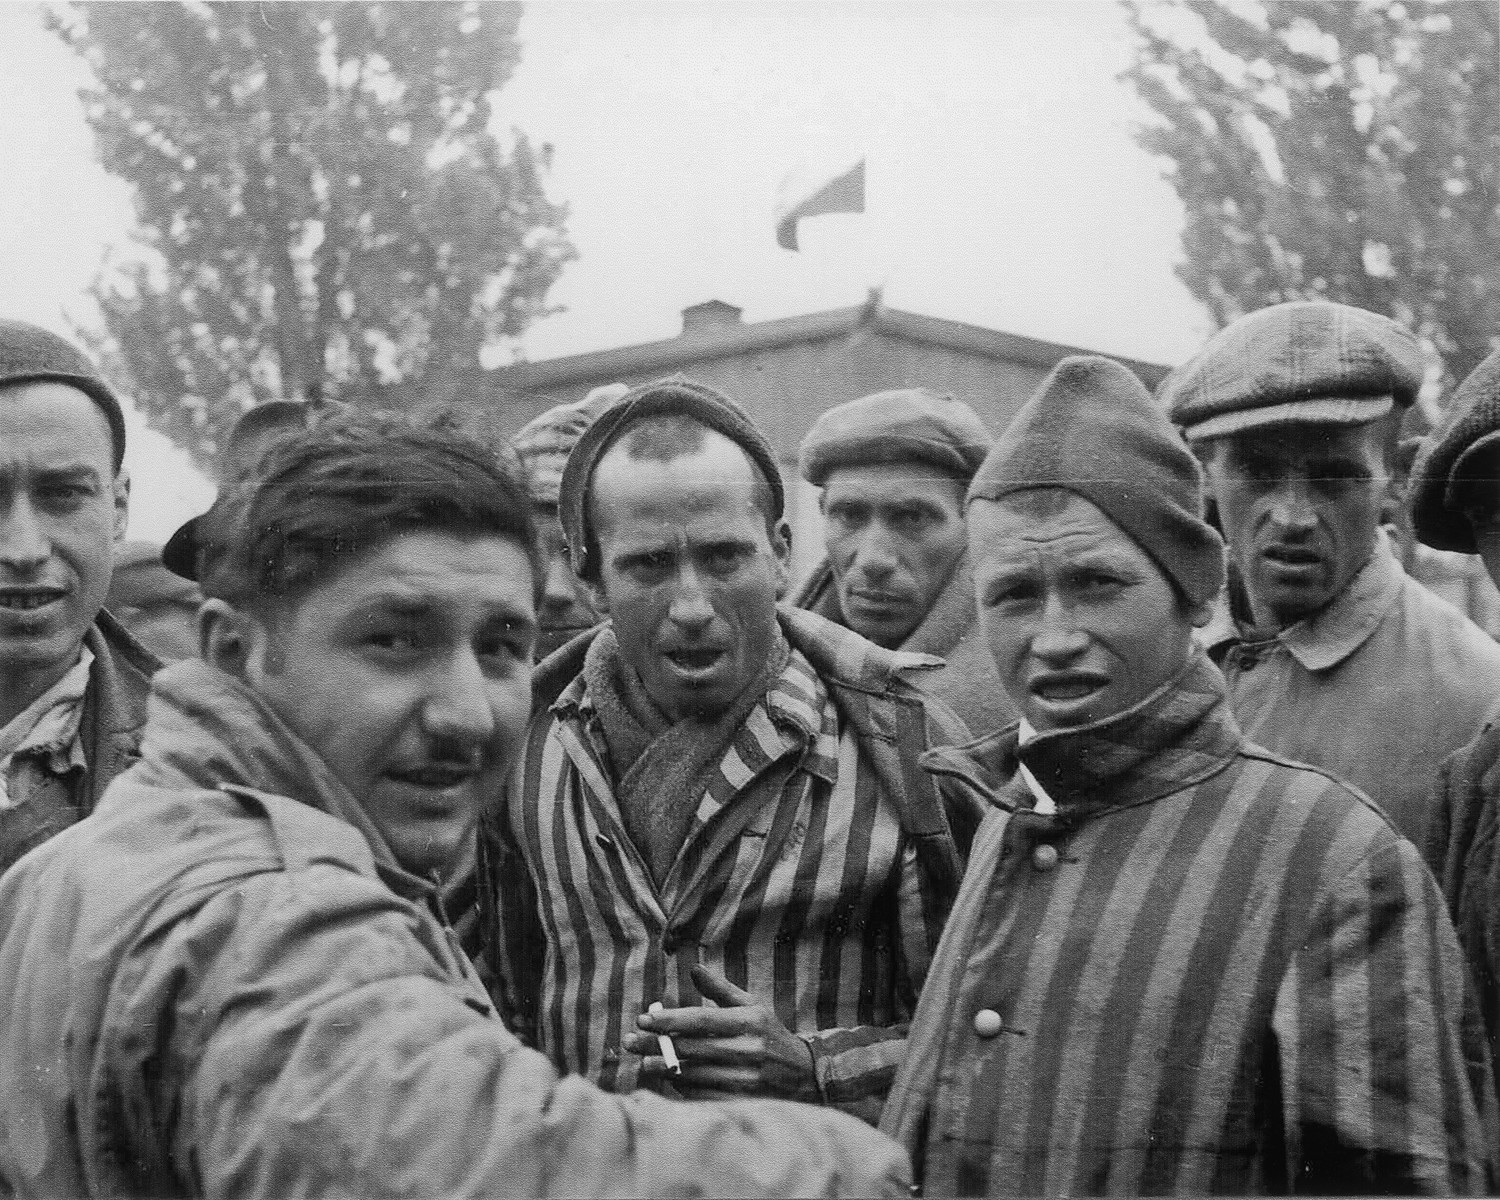 Close-up portrait of survivors of the Dachau concentration camp, one of whom is holding a cigarette.